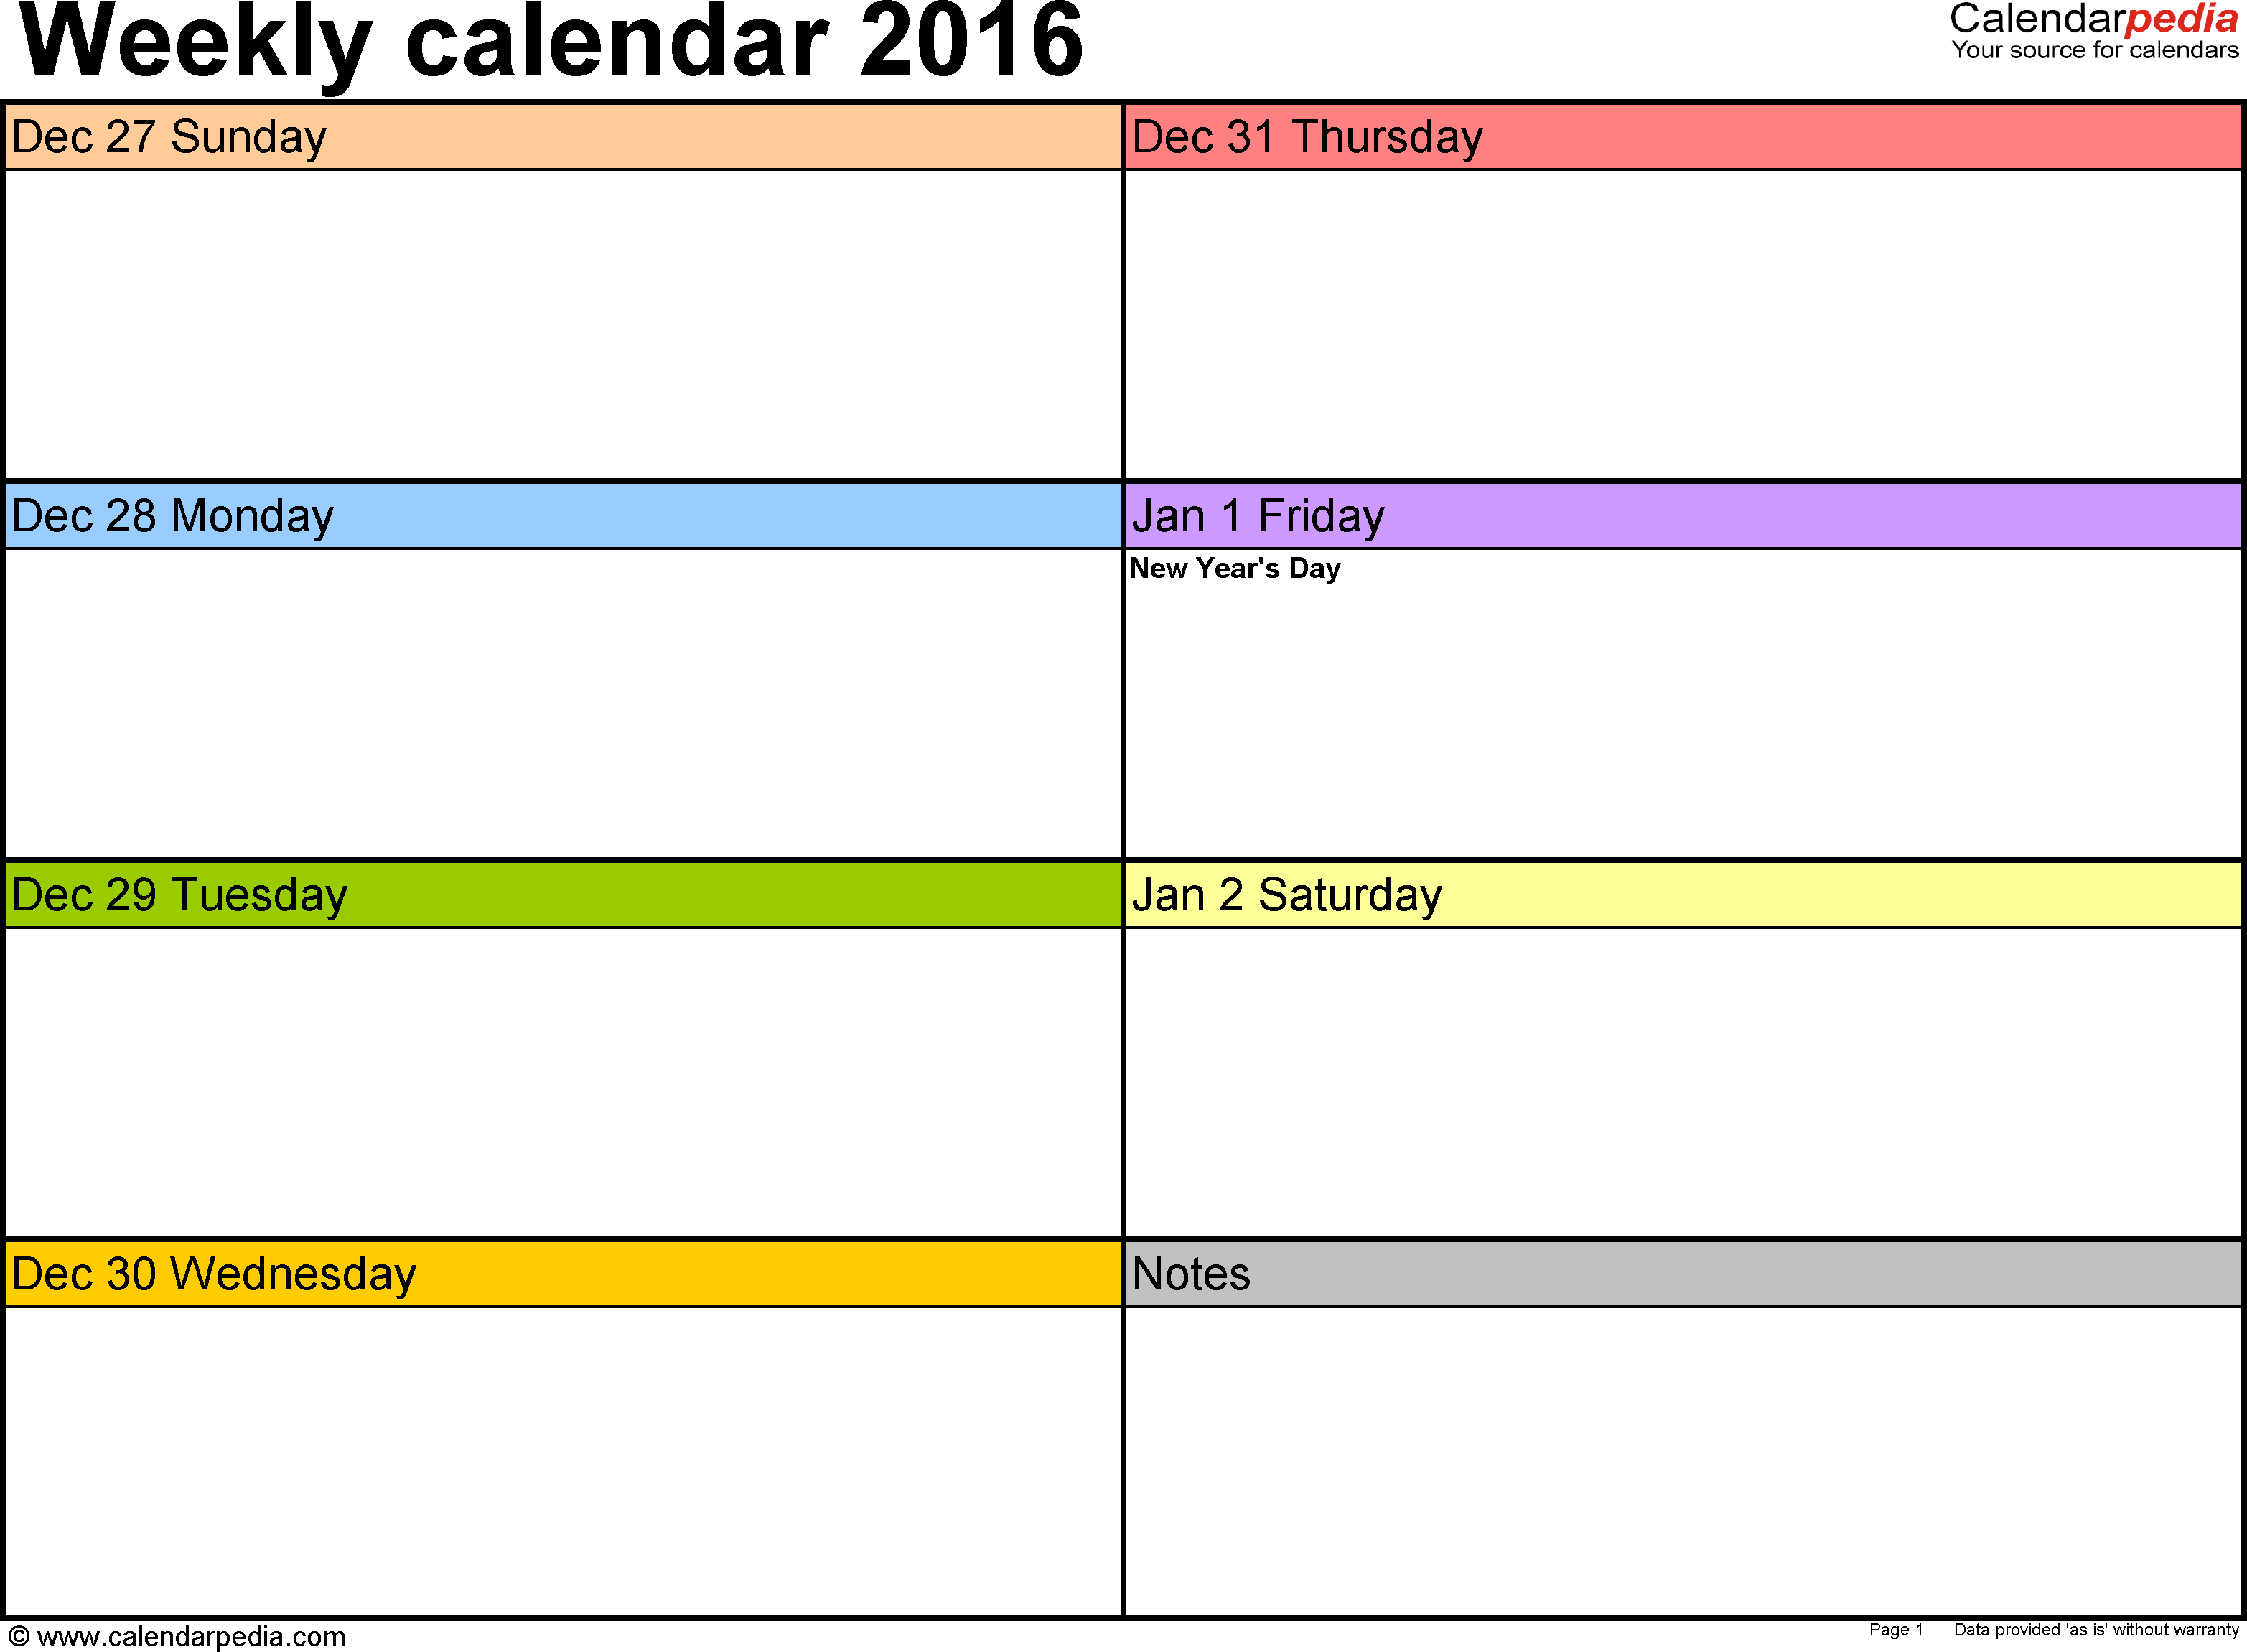 Weekly calendar 2016 for PDF 12 free printable templates – Printable Daily Calendar